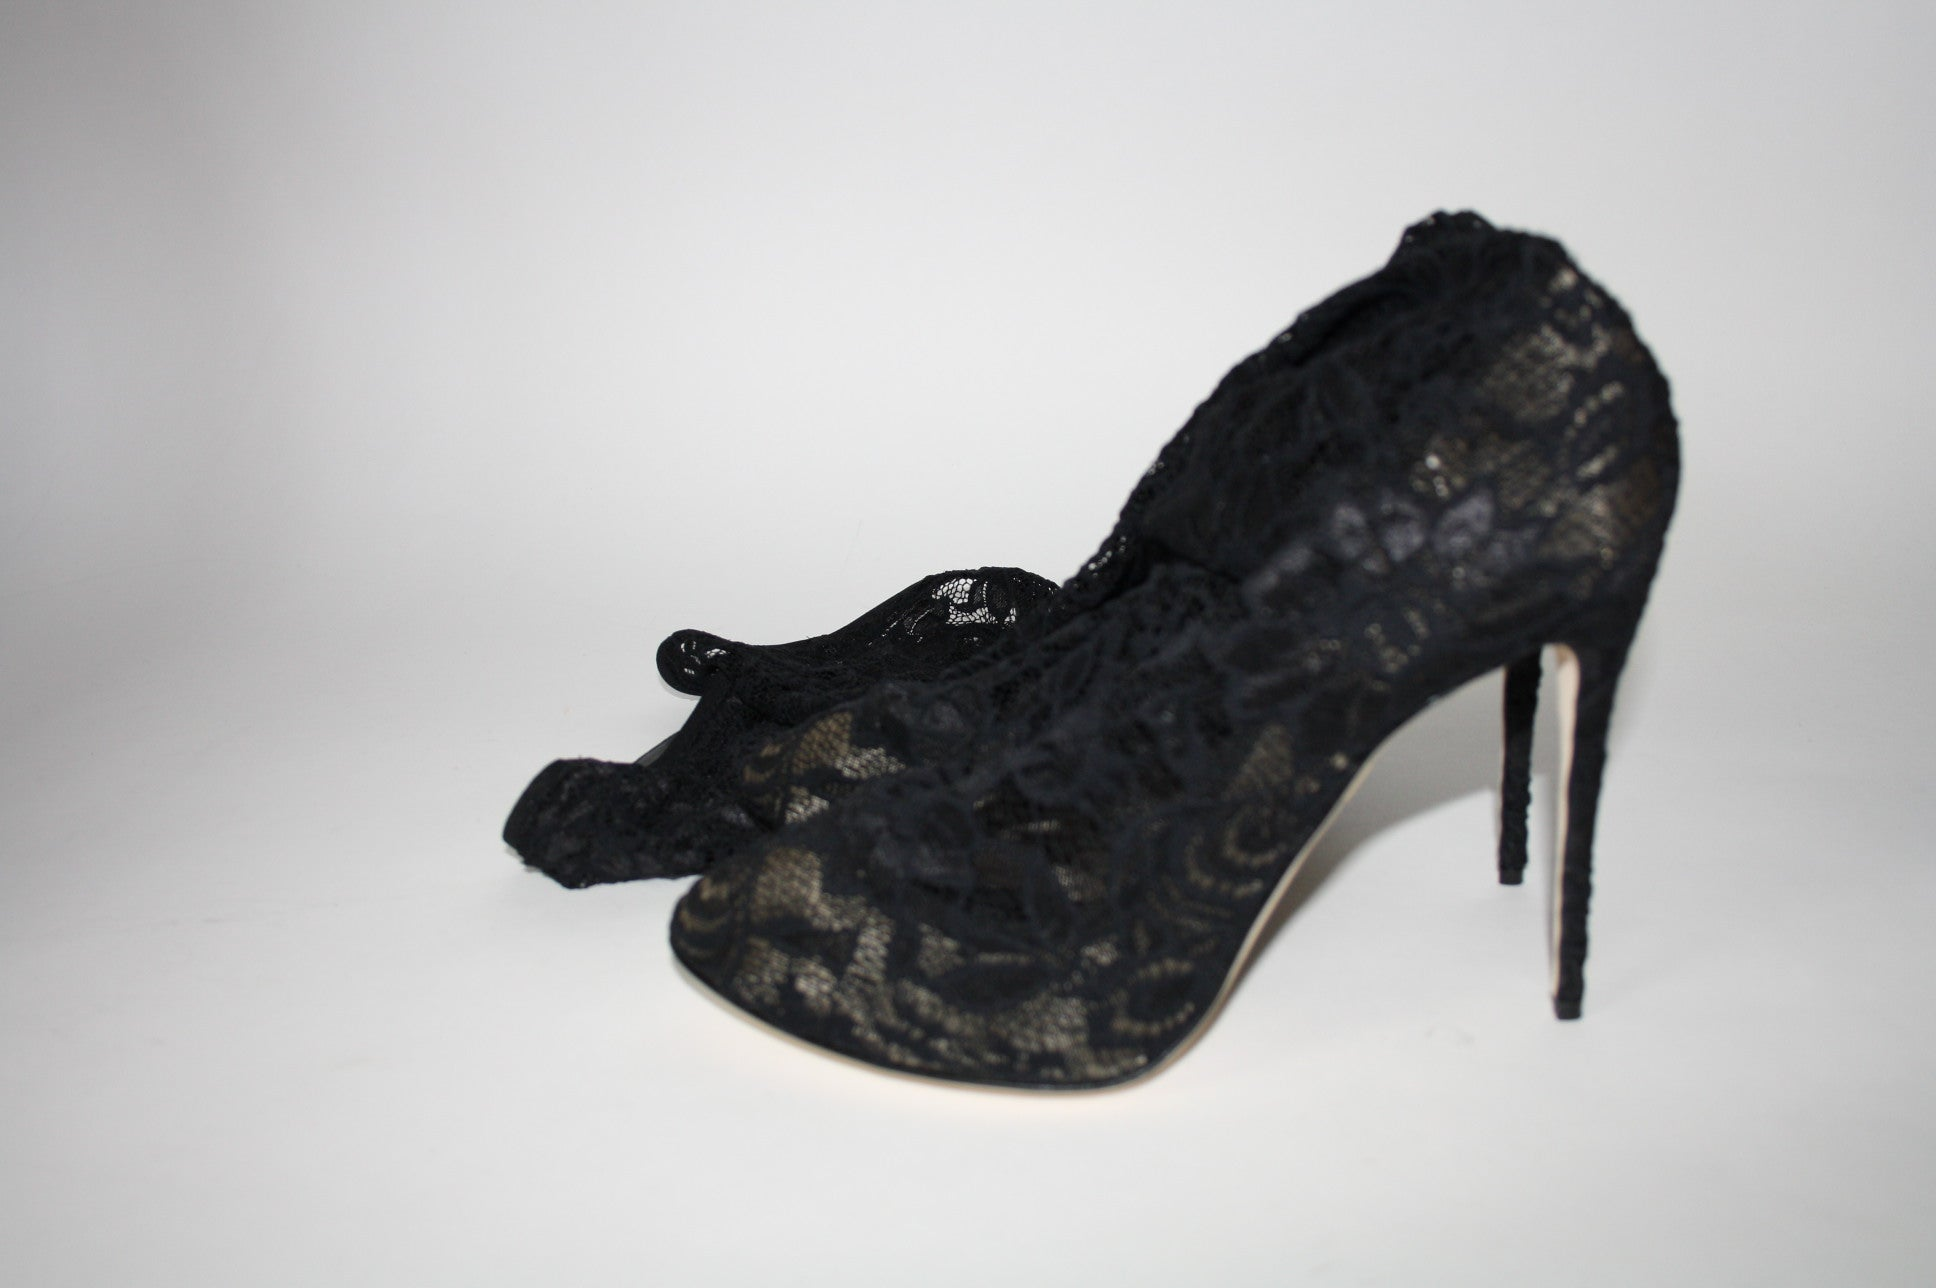 Dolce & Gabbana lace boots, 41 - Iconics Preloved Luxury